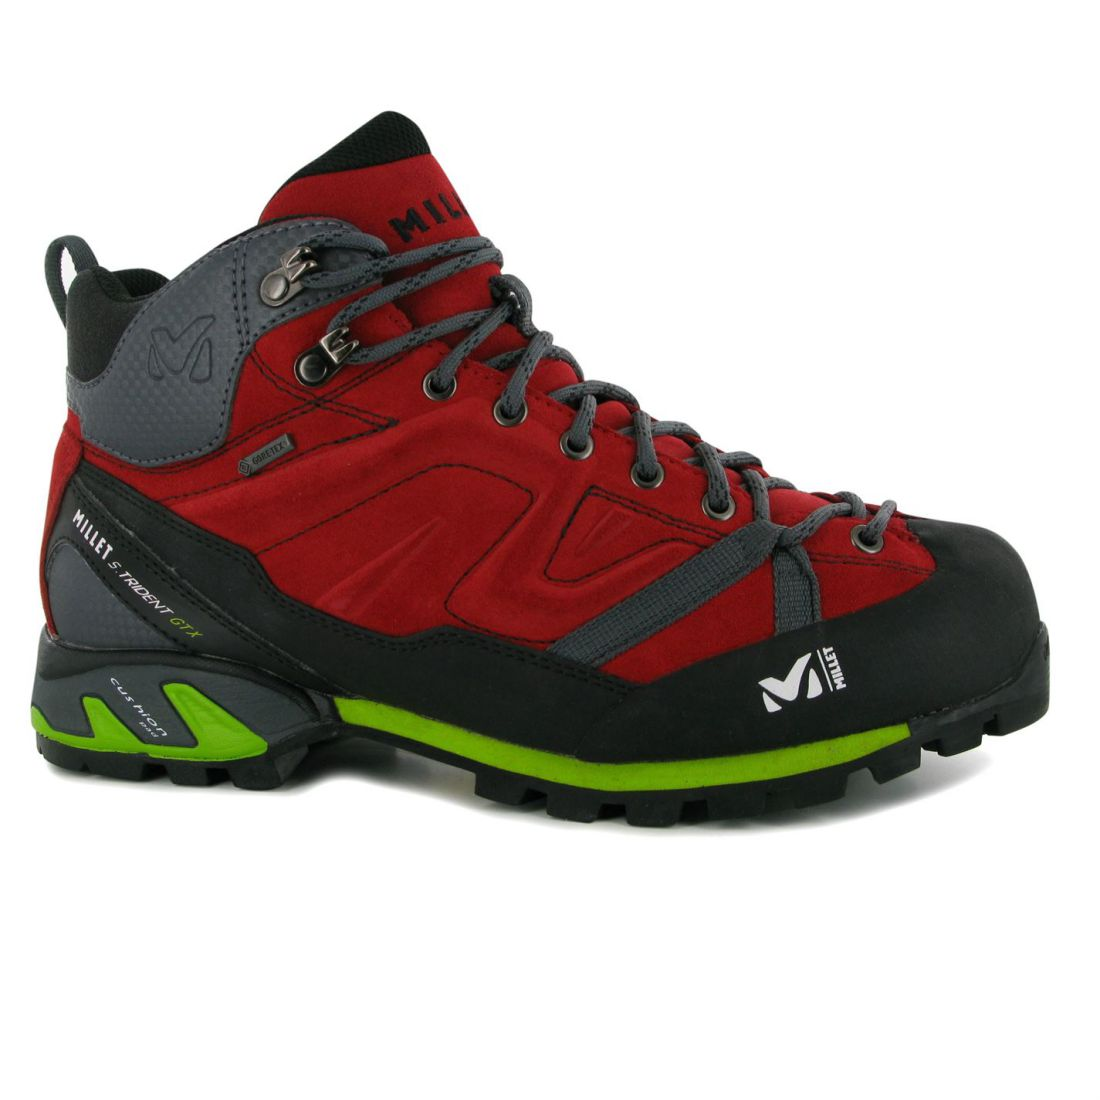 Millet Gents Mens Triden GTX Mid Walking Boots Hiking Trekking Laced shoes